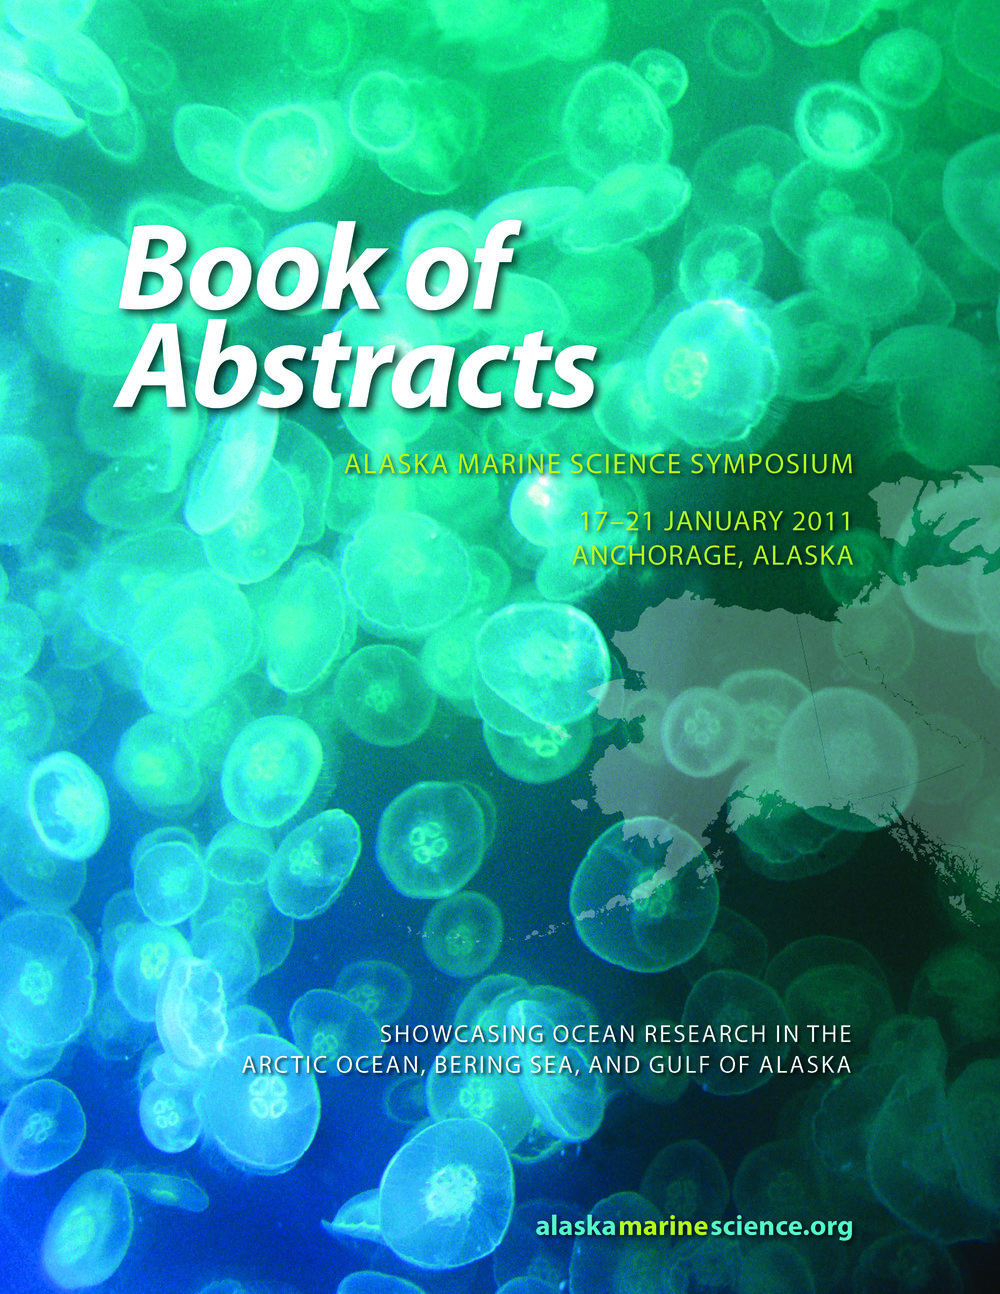 2011_AbstractBookfinalversion-web_Page_001.jpg